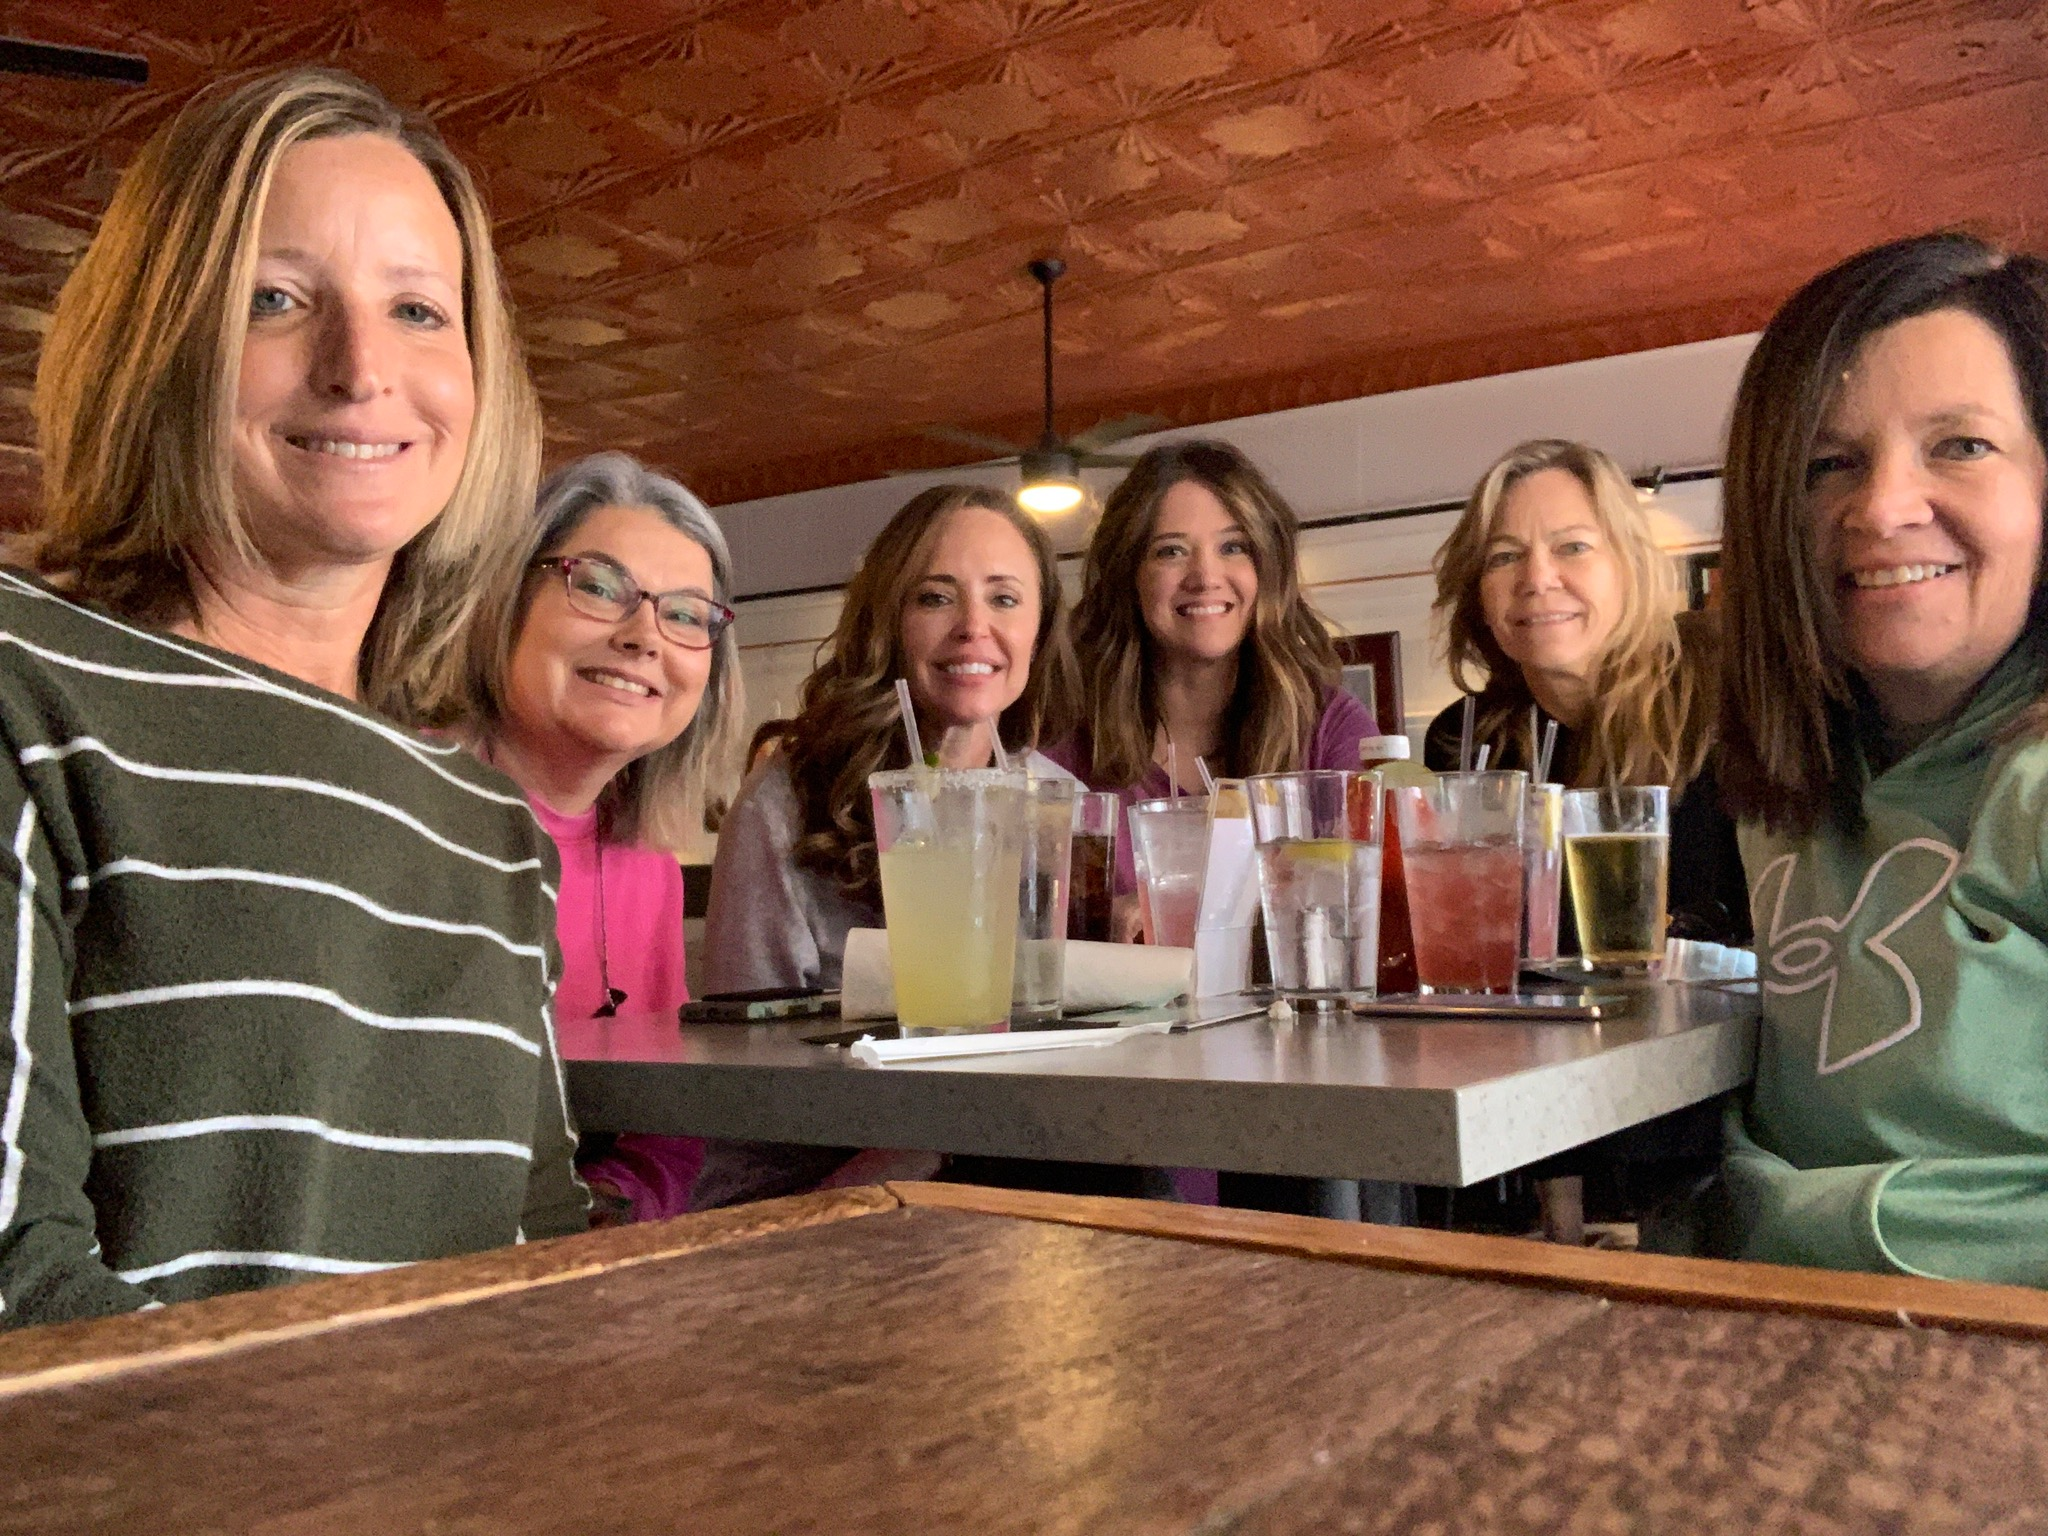 Six women at a table with cocktails in Fredericksburg, VA